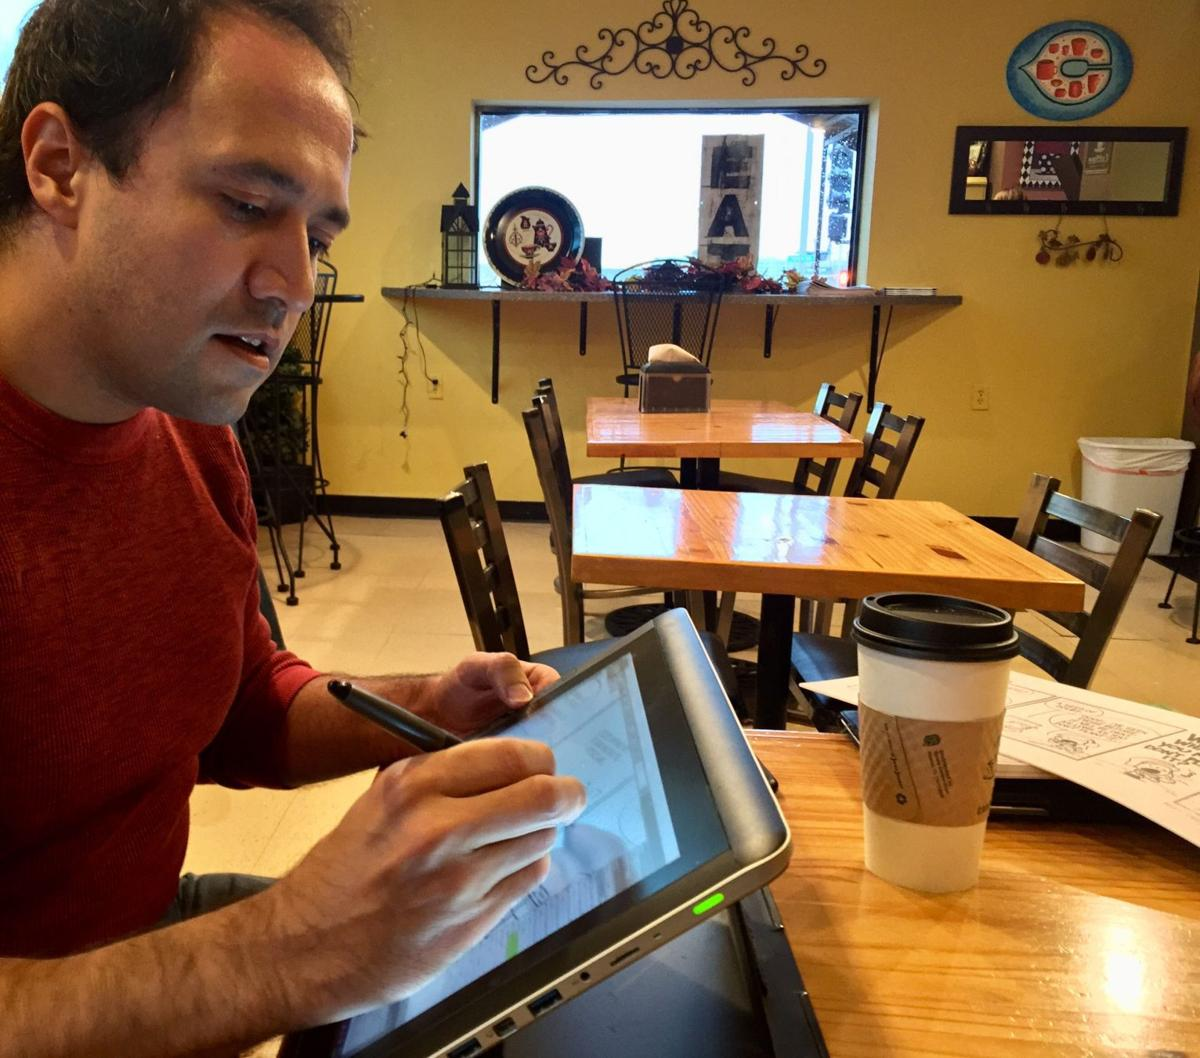 """Quad-City cartoonist Jason Platt sketches a comic strip on his Wacom tablet Monday at Java Java Cafe in Davenport. Earlier this fall, the 43-year-old father released a new book of his stories and illustrations titled, """"mister & Me: Of Castles & Kings."""""""